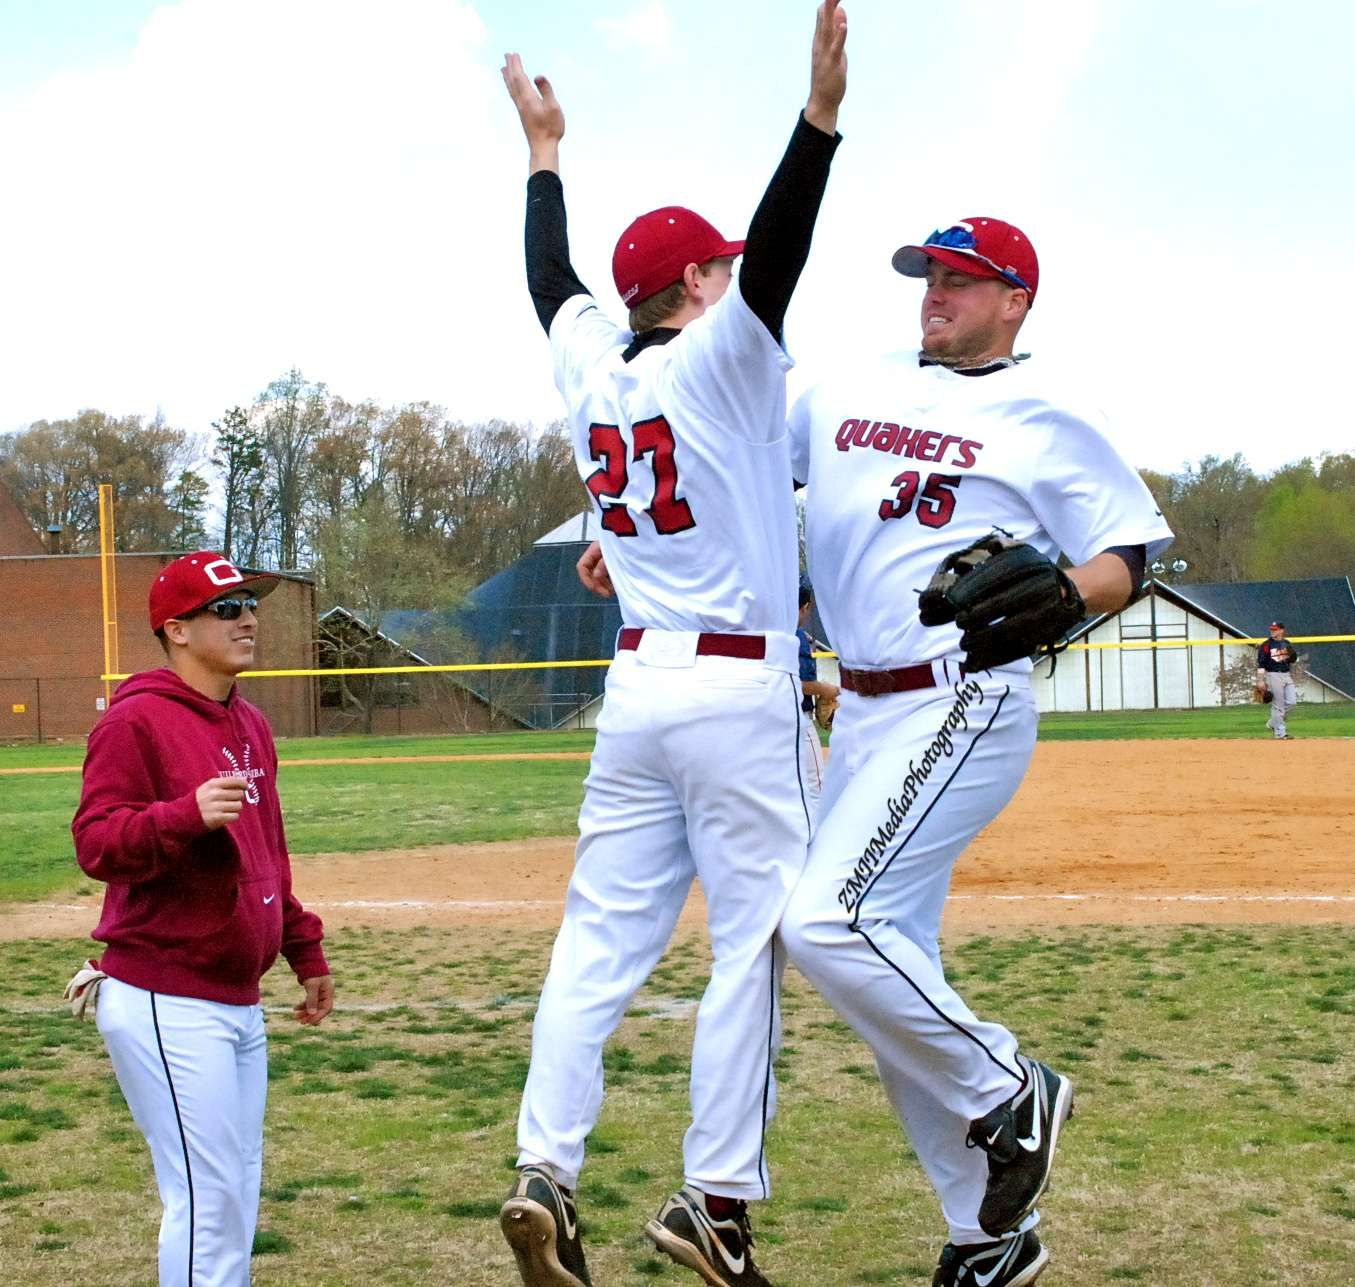 Guilford College Baseball Gets Their High Five On College Athletics Guilford College College Baseball